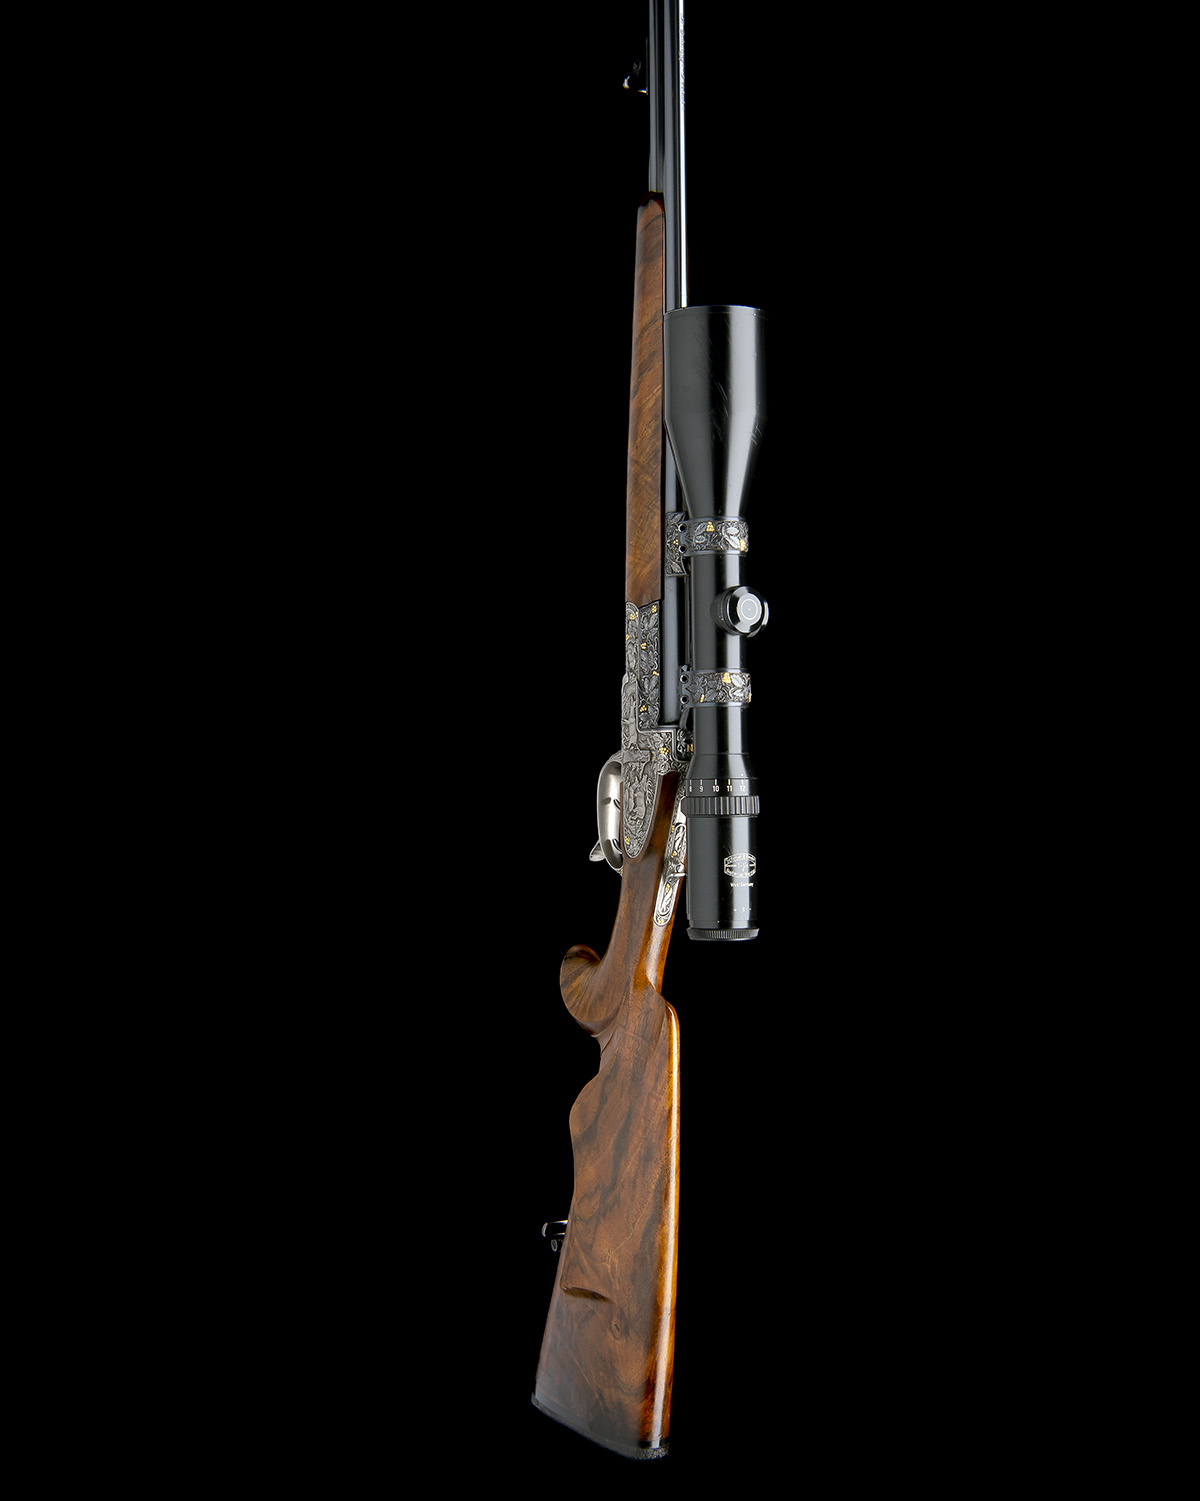 H. SCHEIRING AN 8X57RS / 5.6X50R MAG. JAEGER PATENT SIDEPLATED OVER AND UNDER PUSH-FORWARD - Image 11 of 12